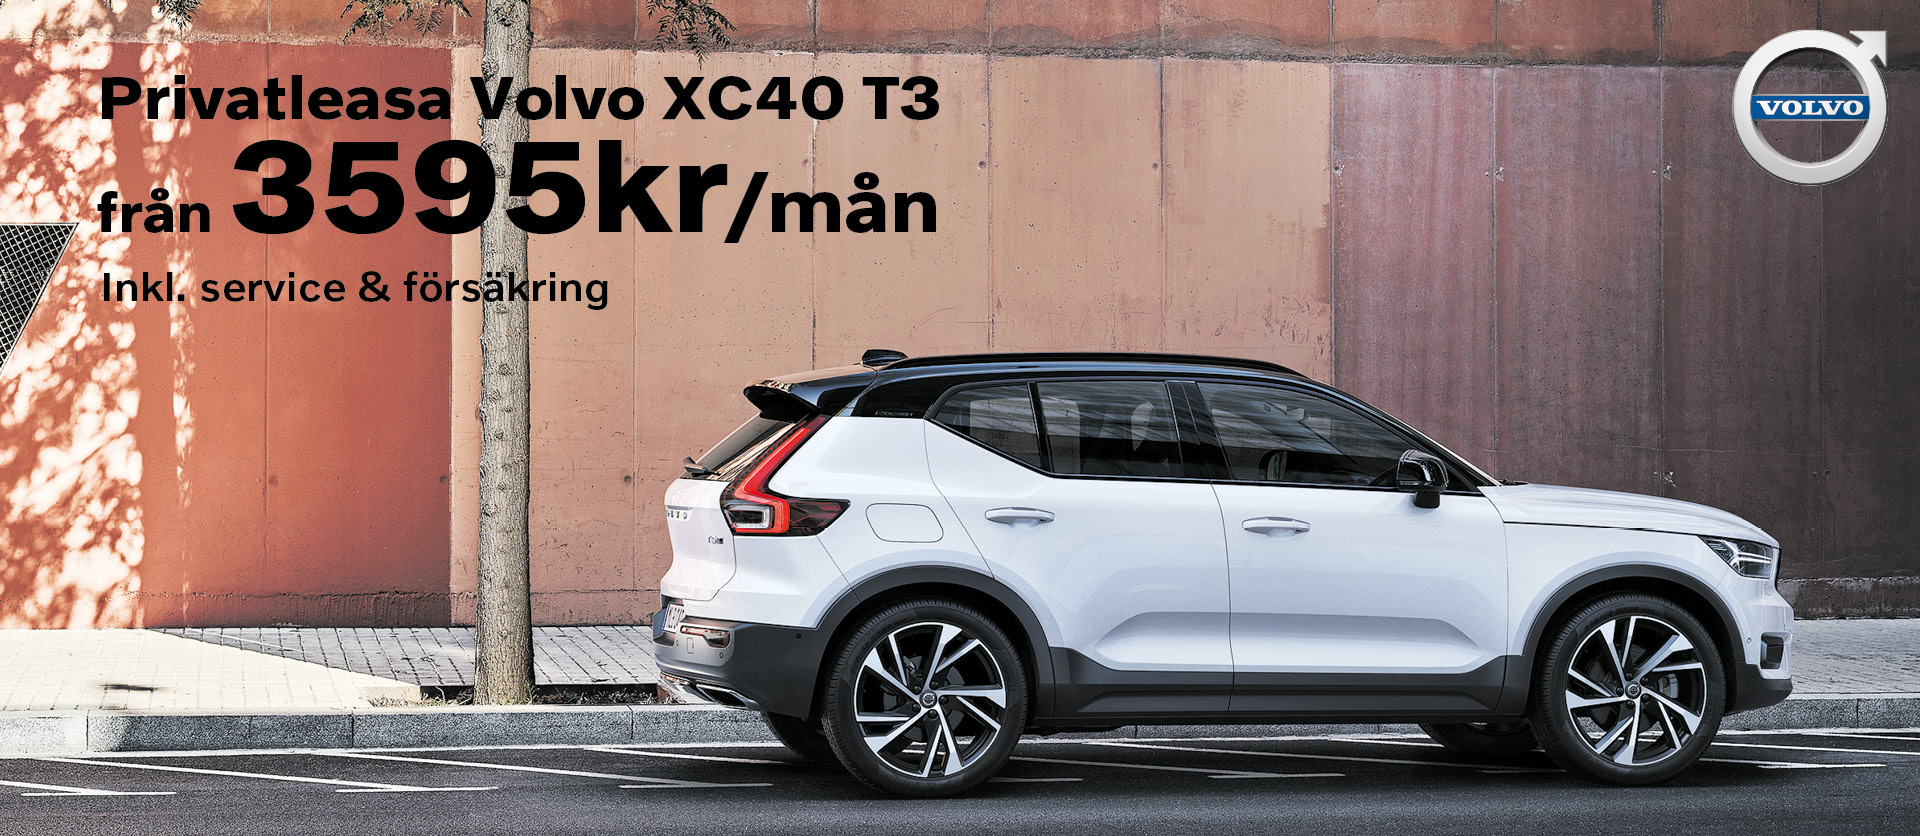 XC40 privatleasingkampanj